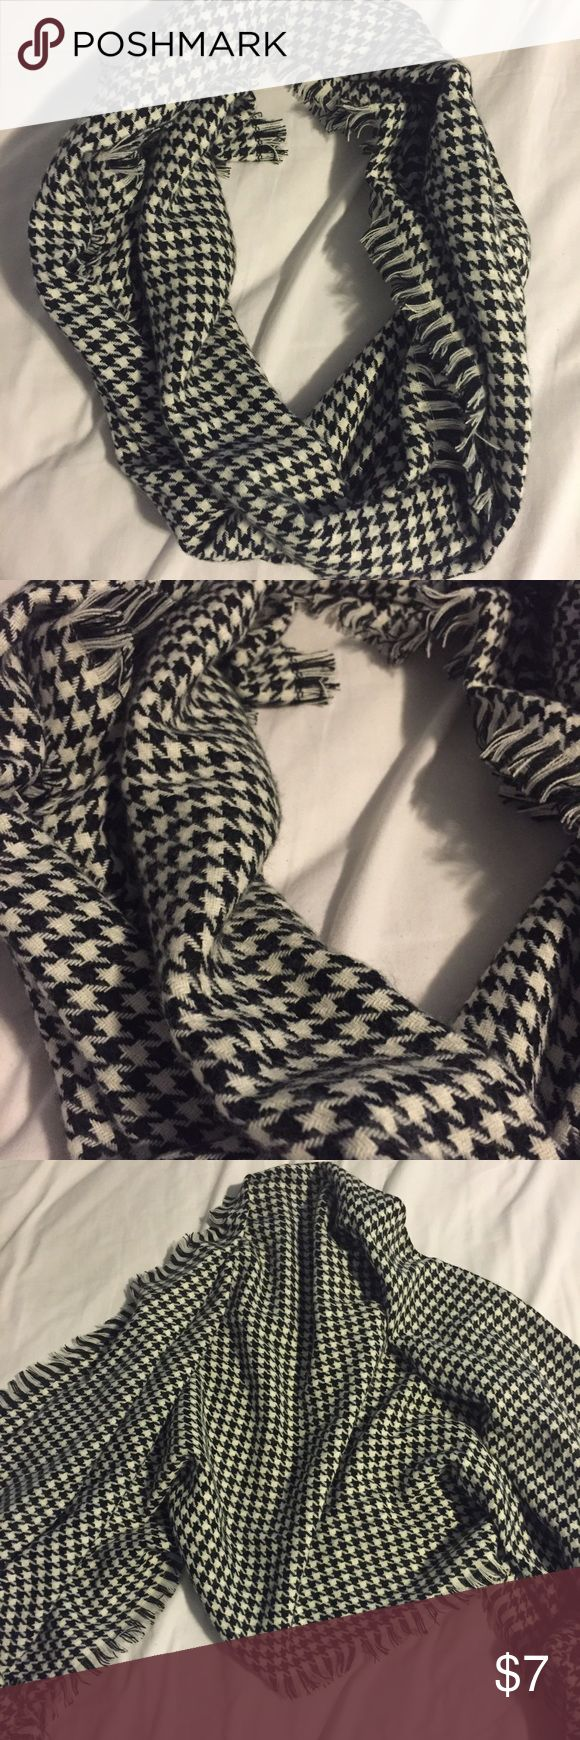 Black and White Scarf This is a black and white (checkered?) scarf! Never worn but doesn't have tags. This has been washed once and didn't bleed on to whites! It is very soft and a strong material that will keep you warm! Accessories Scarves & Wraps